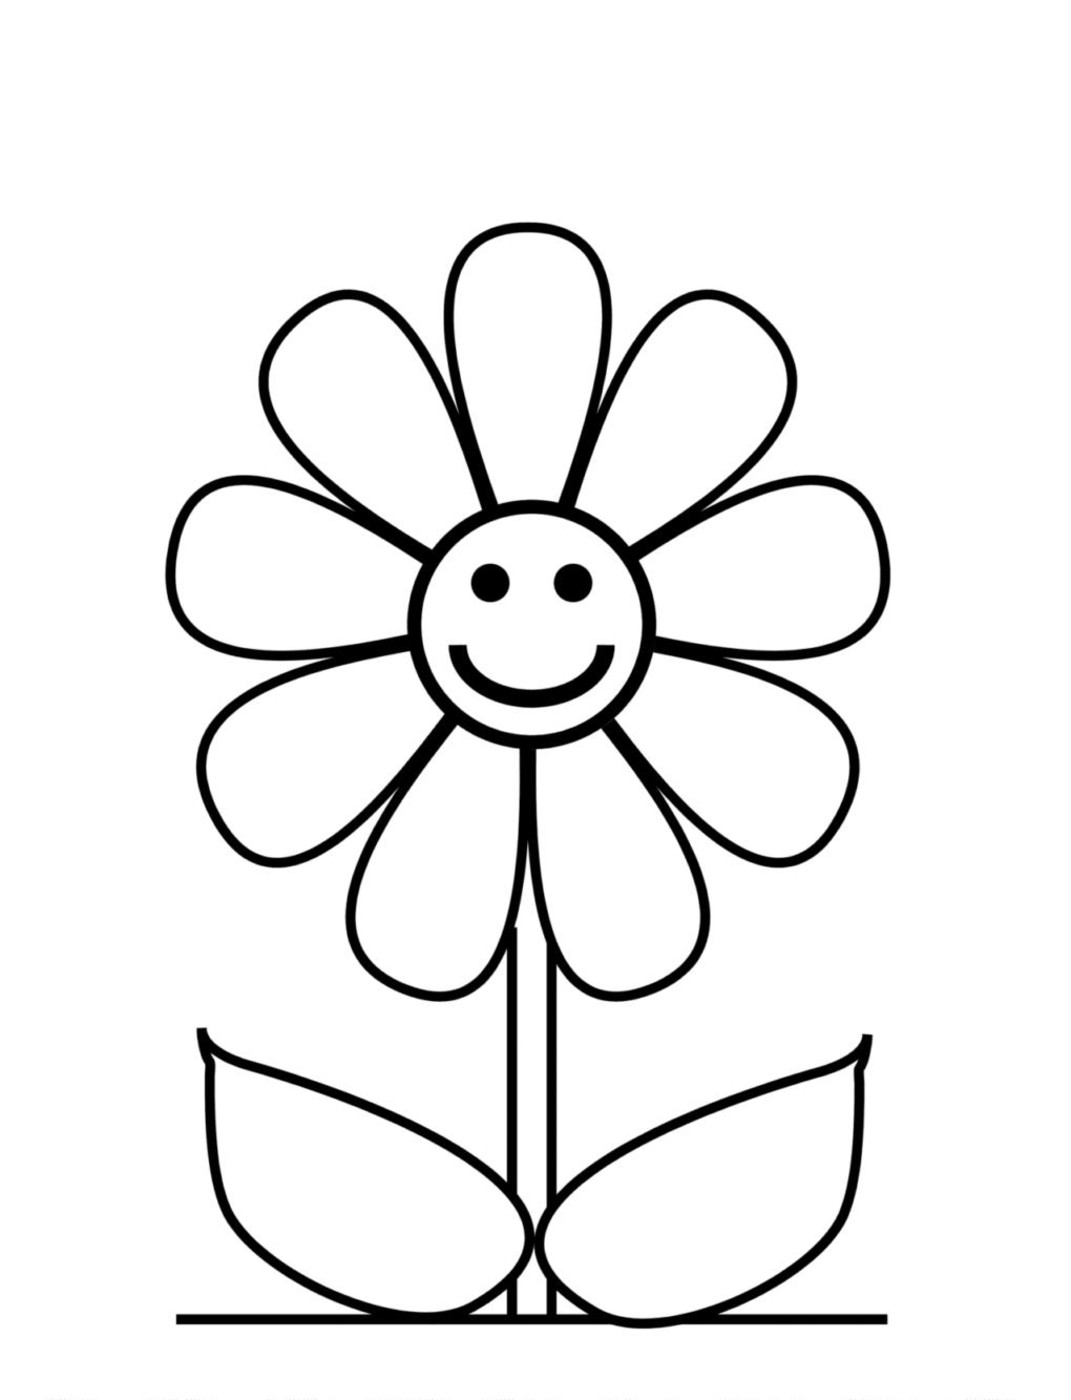 Kawaii cute flower coloring pages coloring pages for Coloring pages of a flower